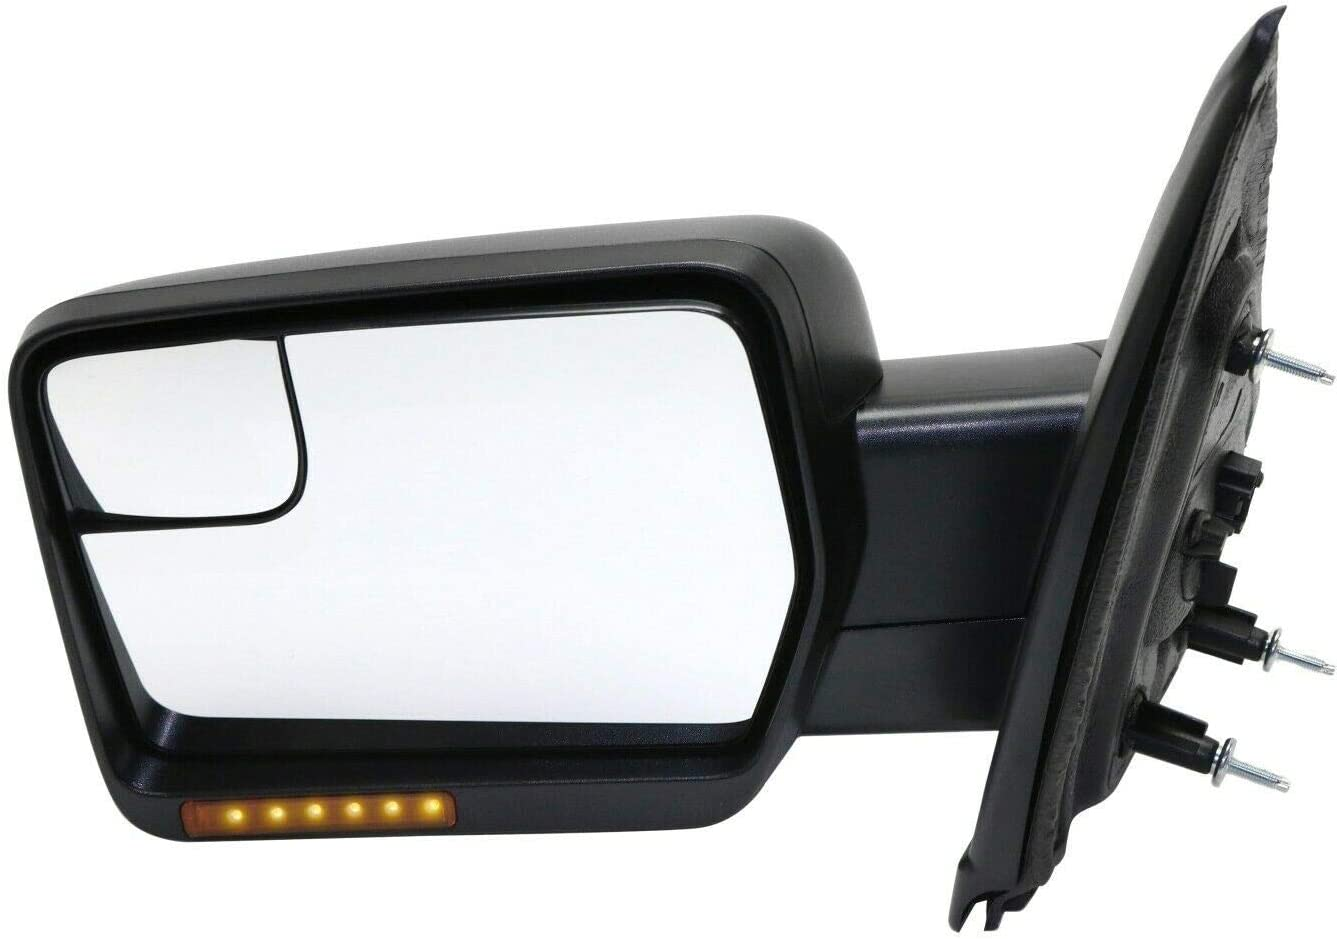 Puermto Bargain sale Mirror Heated Truck Left In-housing Side Turn Hand Signa Max 47% OFF